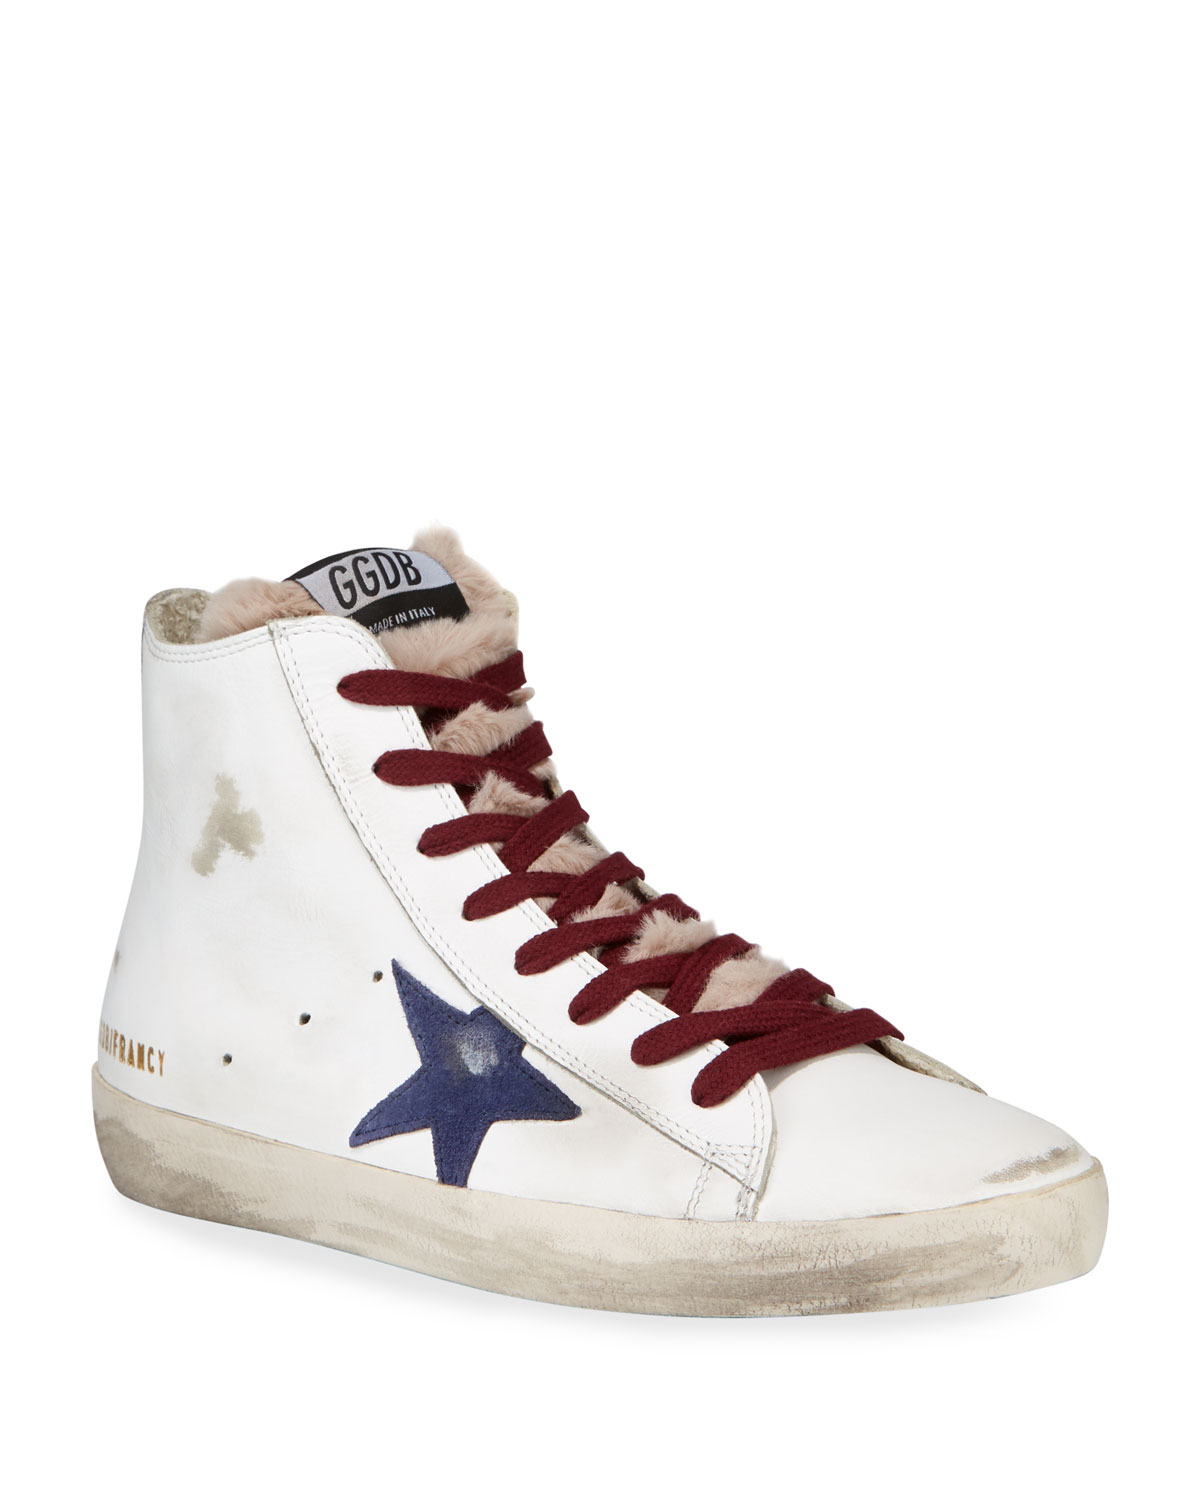 Golden Goose Sneakers FRANCY LEATHER HIGH-TOP SNEAKERS